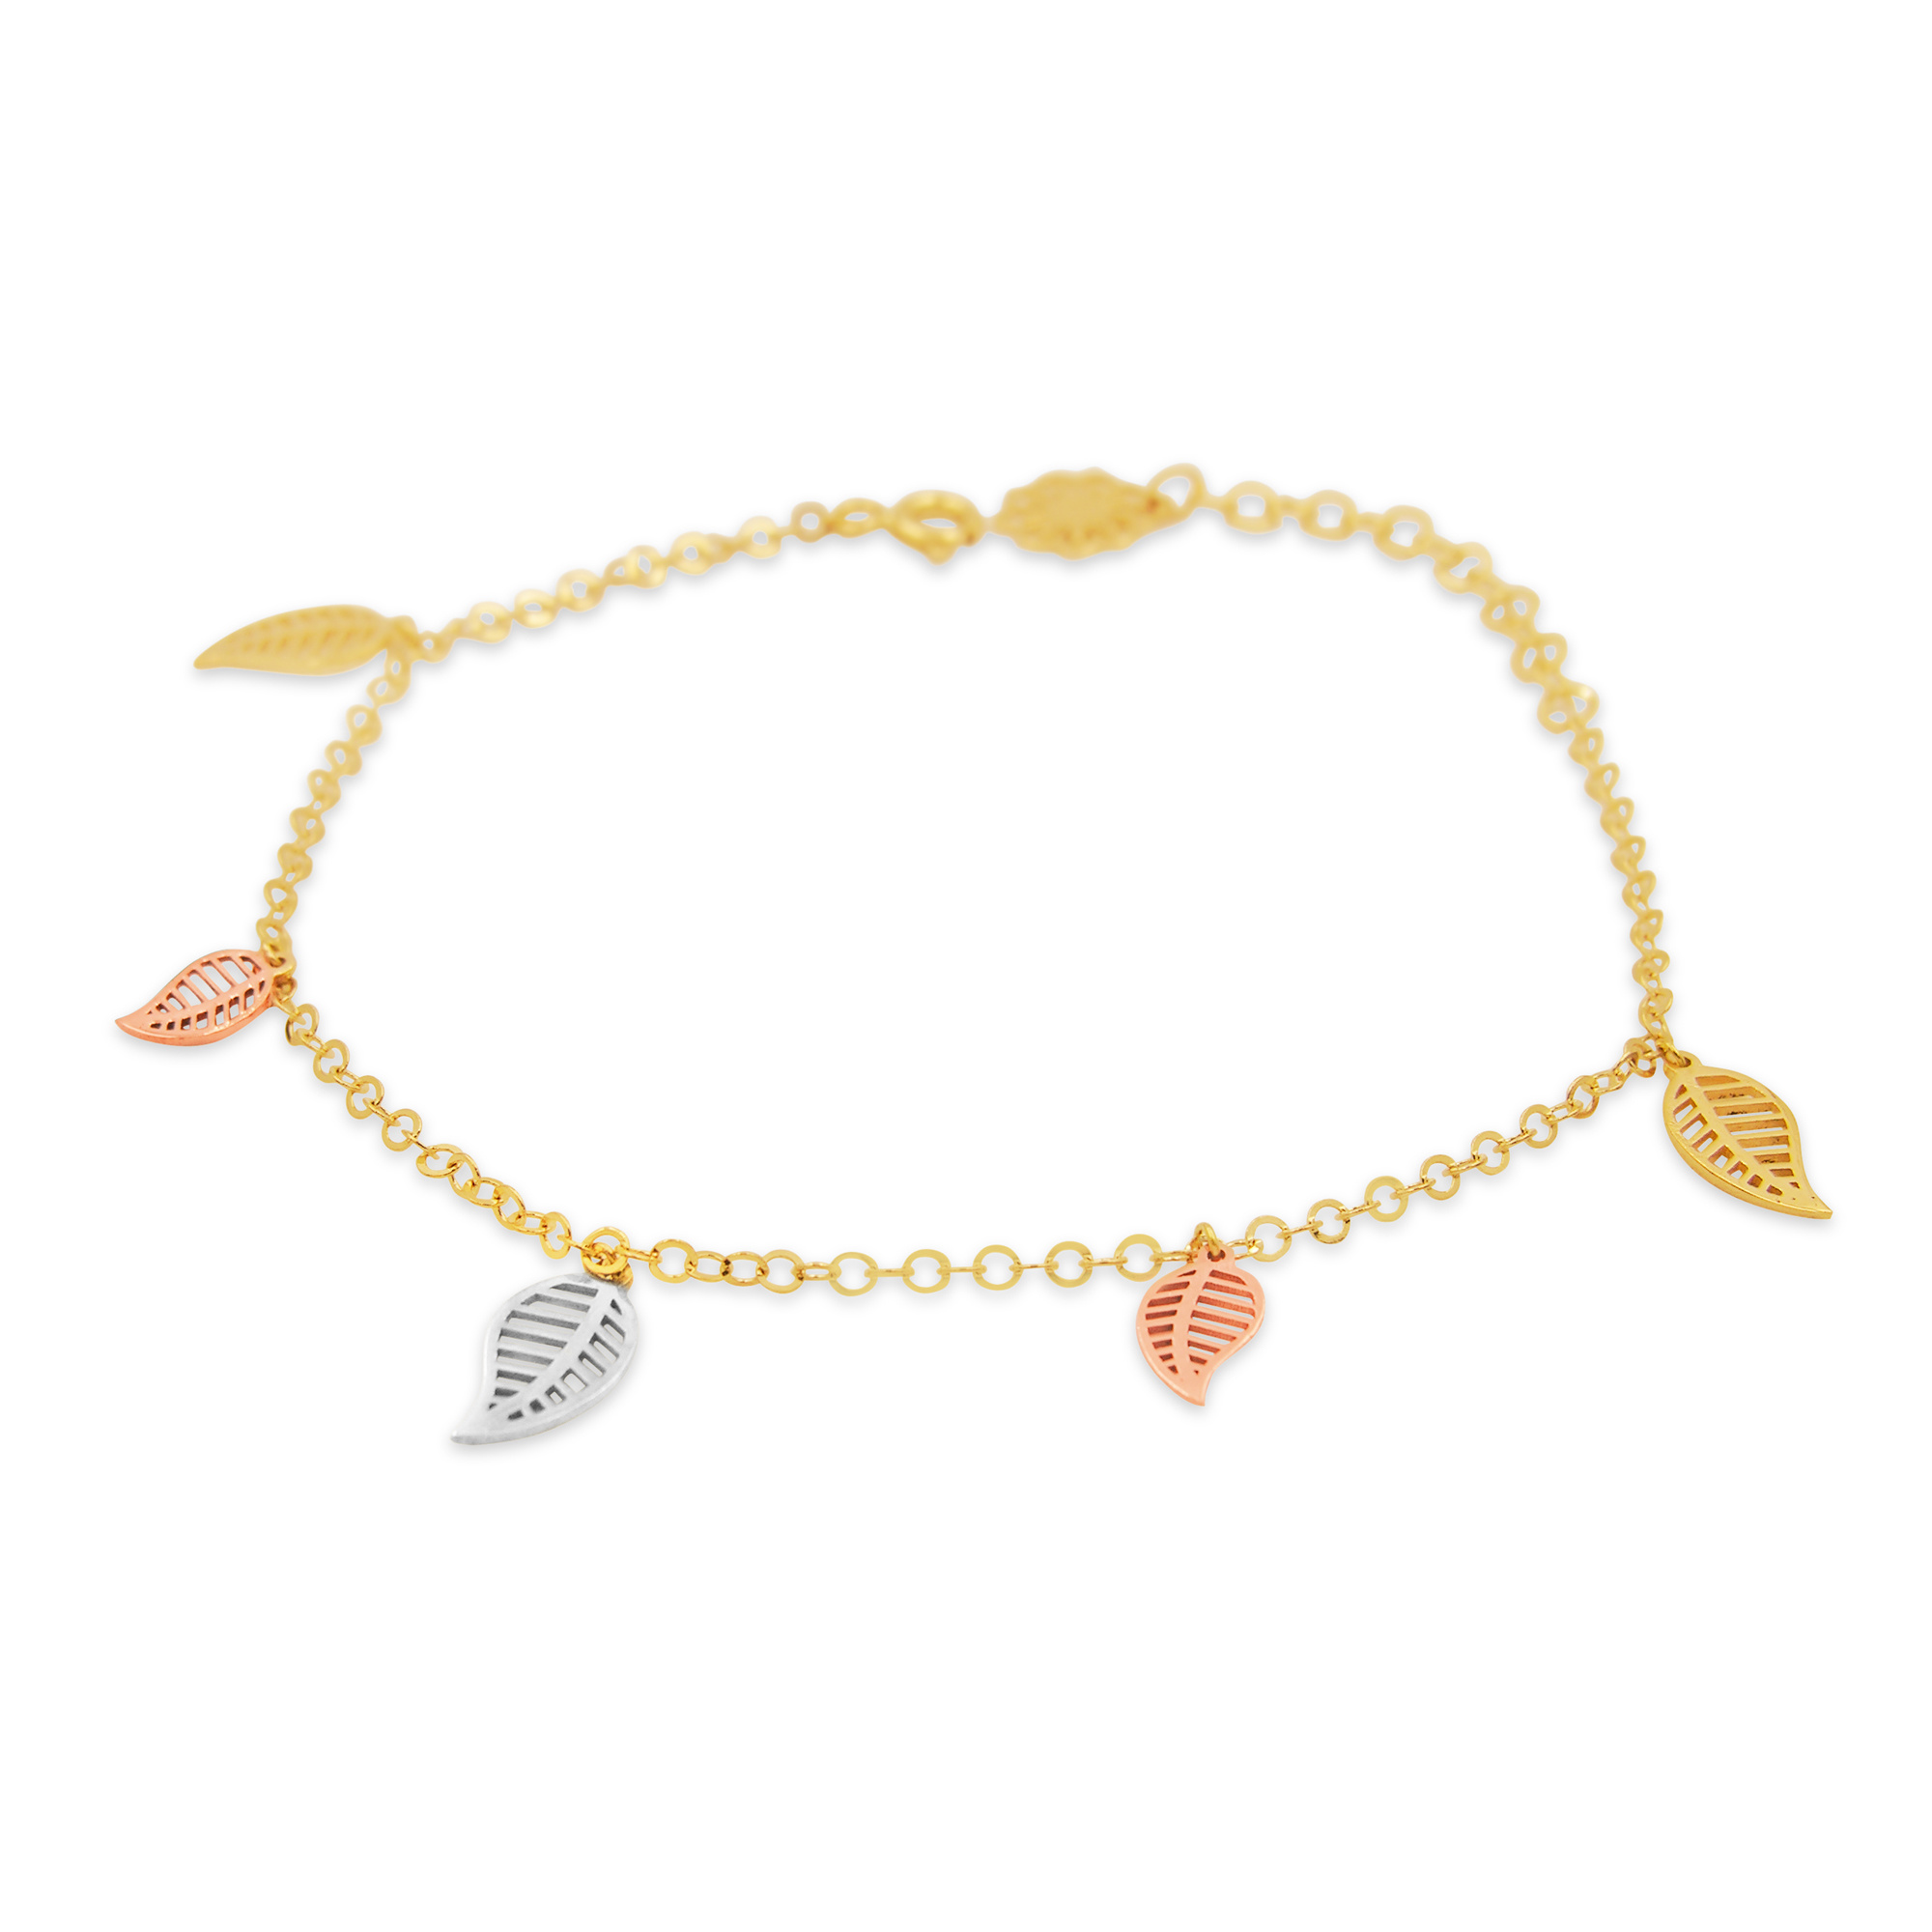 18 kt yellow gold charm bracelet with 3 color gold leafs